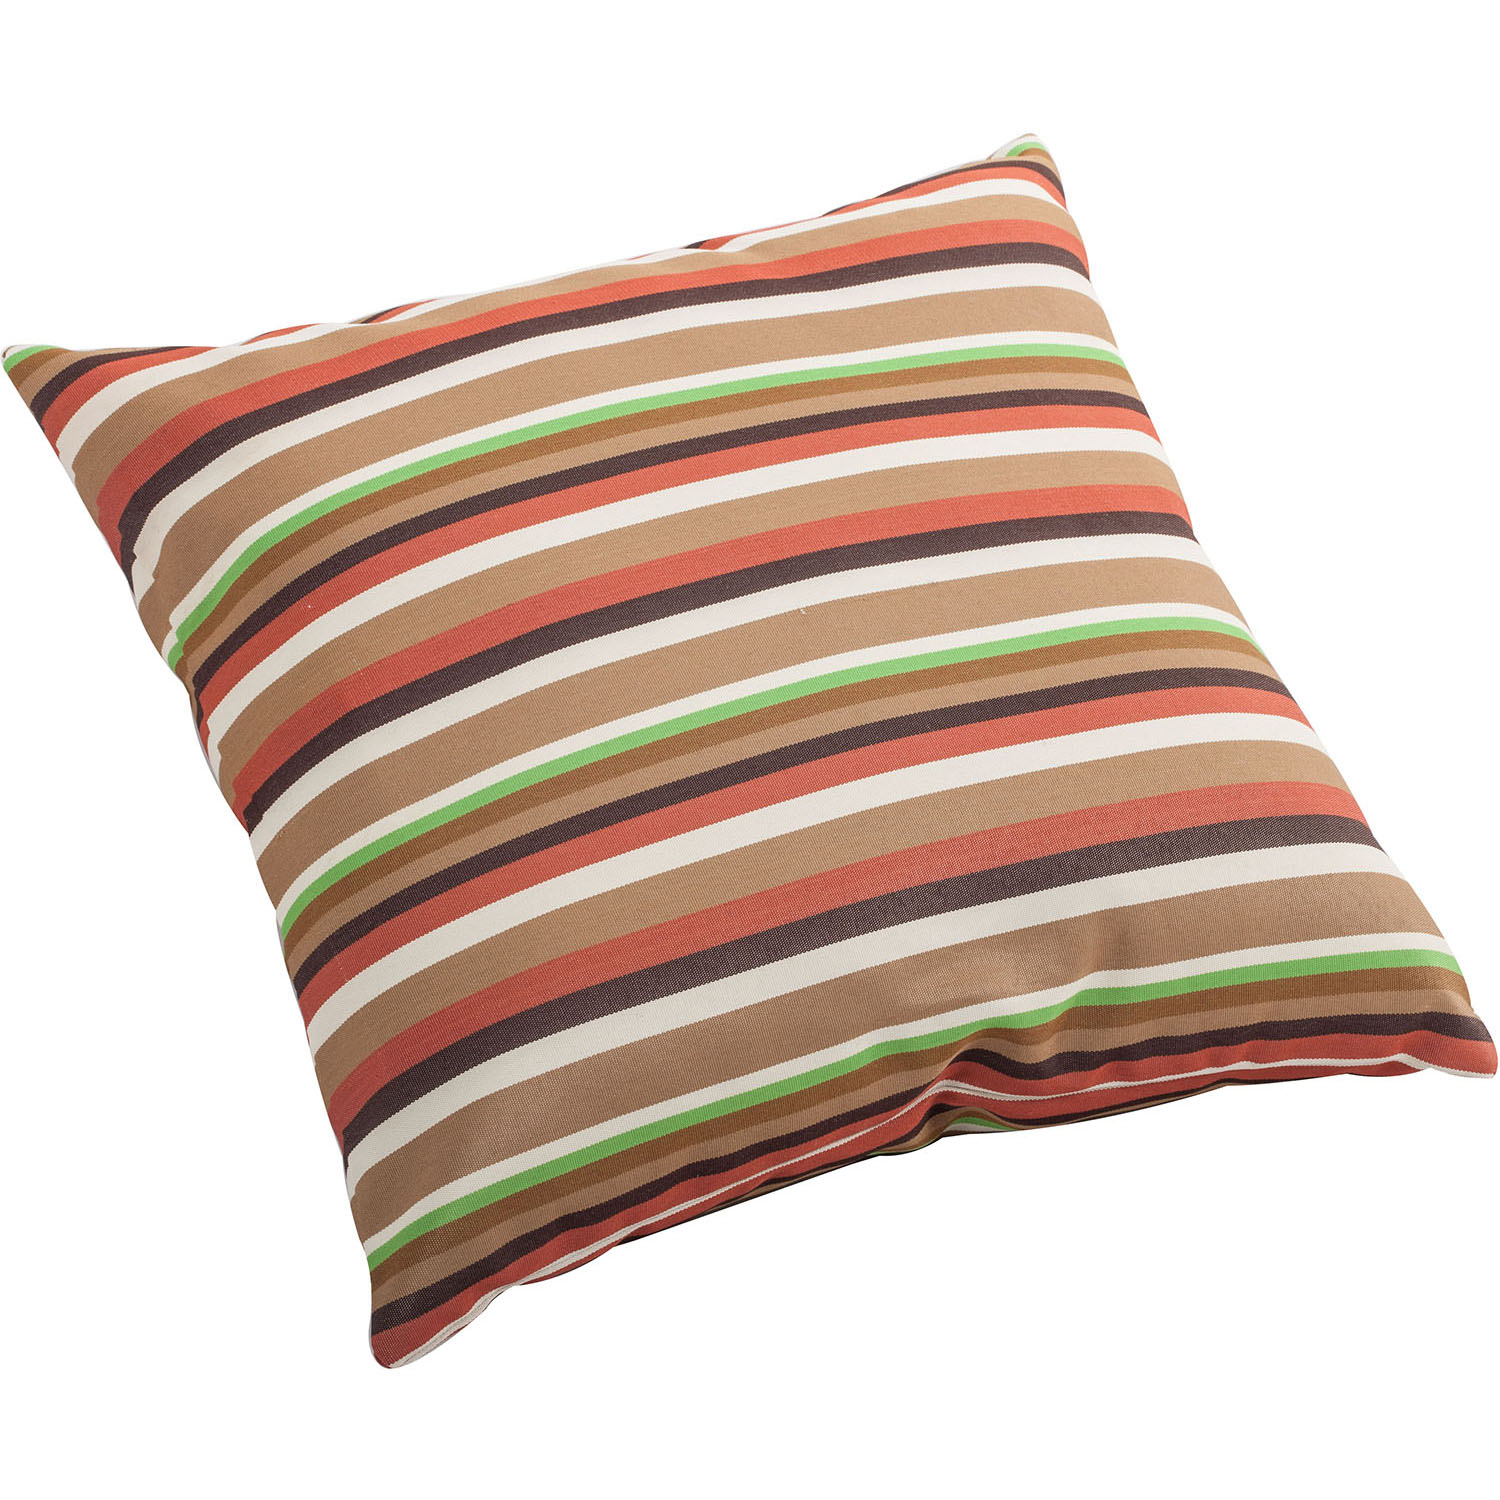 Outdoor Hamster Pillow Brown Base Multistripe Pattern: Size Options